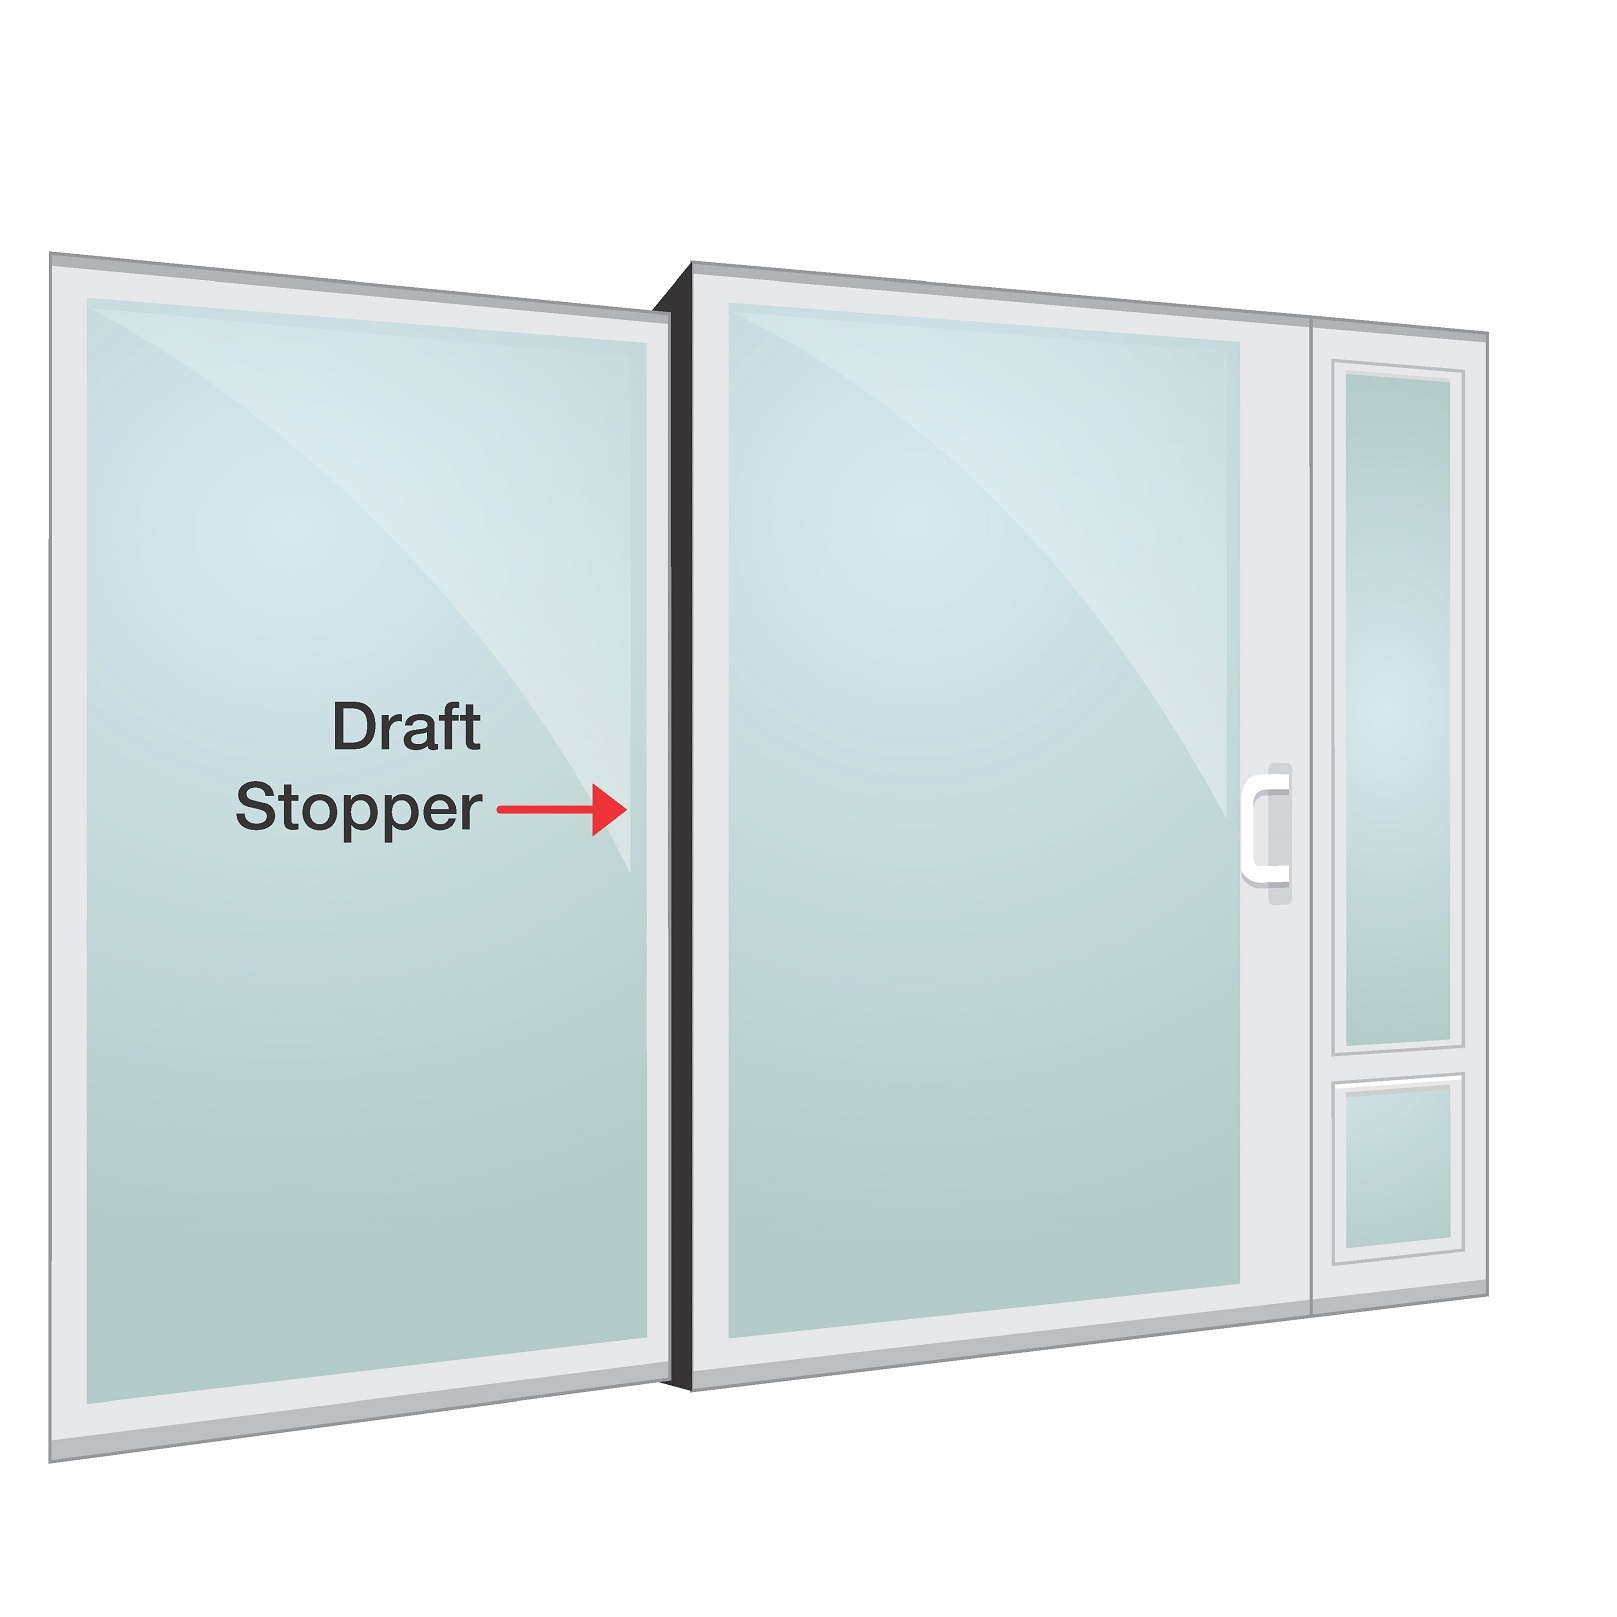 Sliding Glass Door Draft Stopper